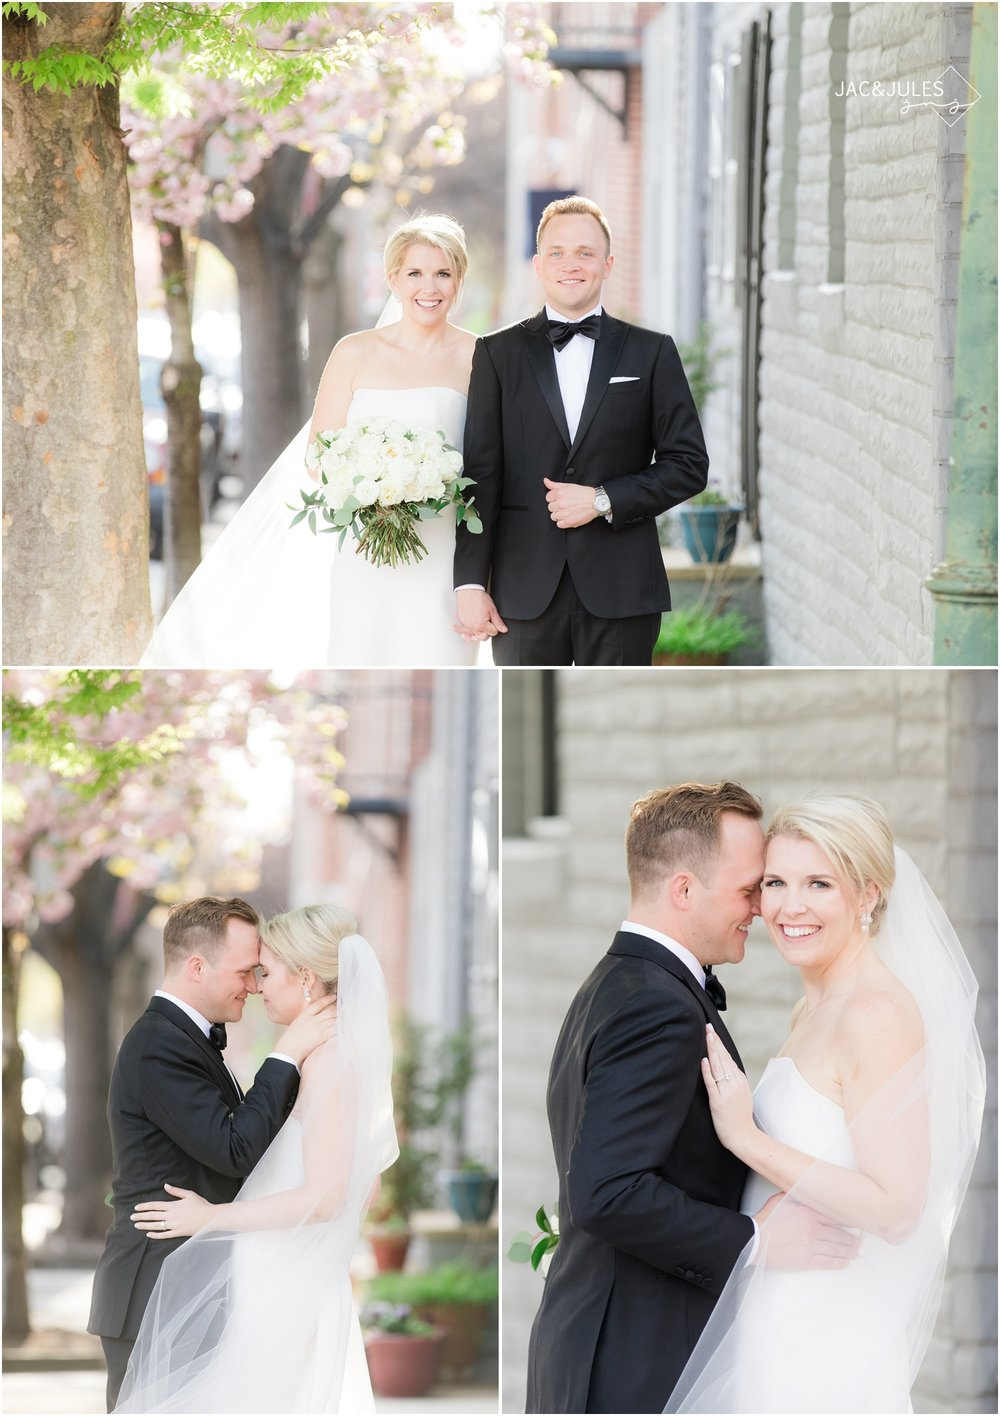 Pretty photos of bride and groom on cherry blossom lined street in downtown Baltimore, MD.